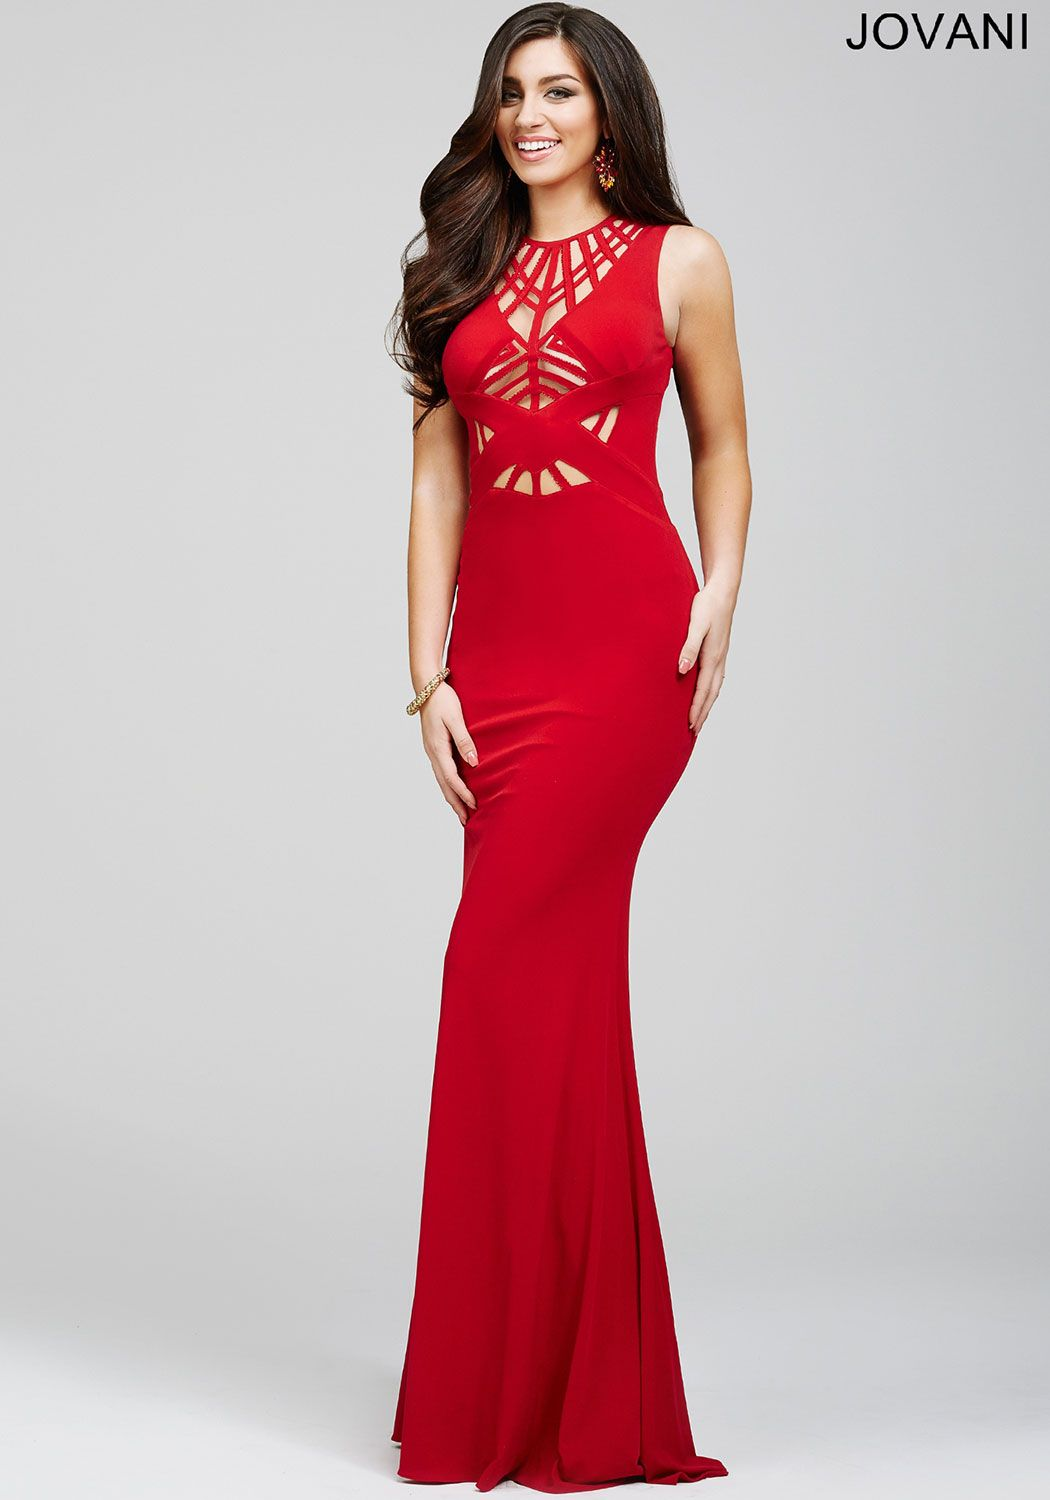 Jovani style sexy sleeveless floor length jersey prom dress